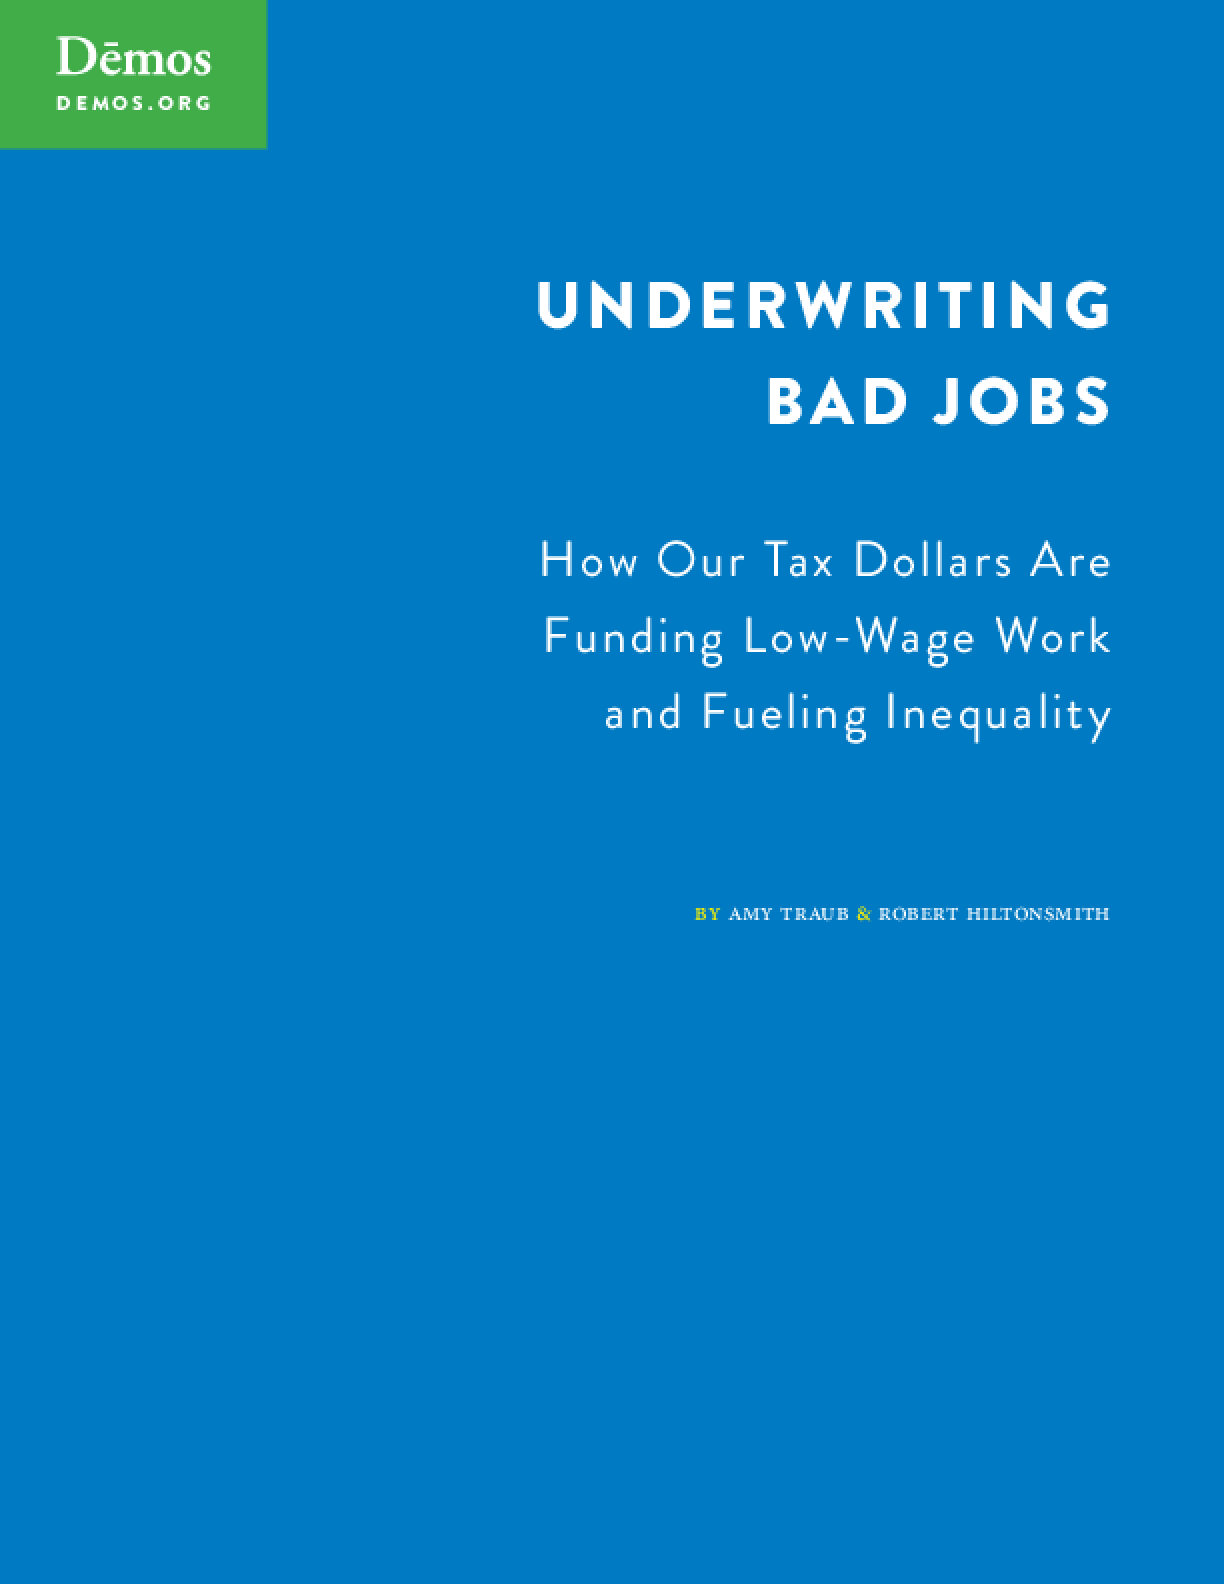 Underwriting Bad Jobs: How Our Tax Dollars are Funding Low-Wage Work and Fueling Inequality